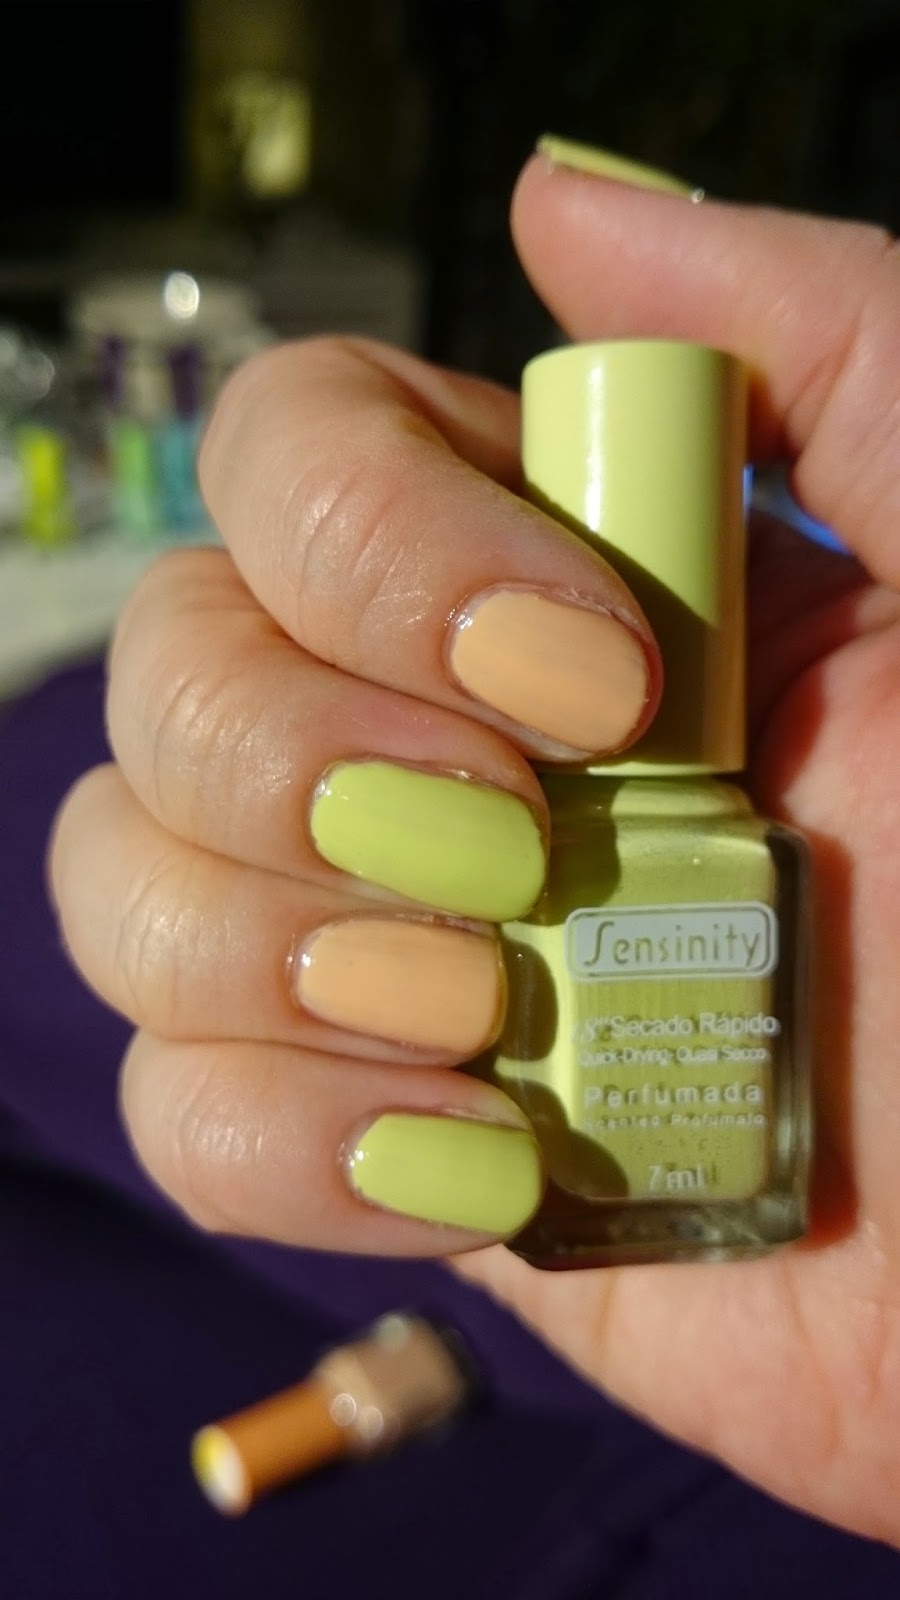 sensinity, nagellack, nail polish, green, grönt, orange, nude